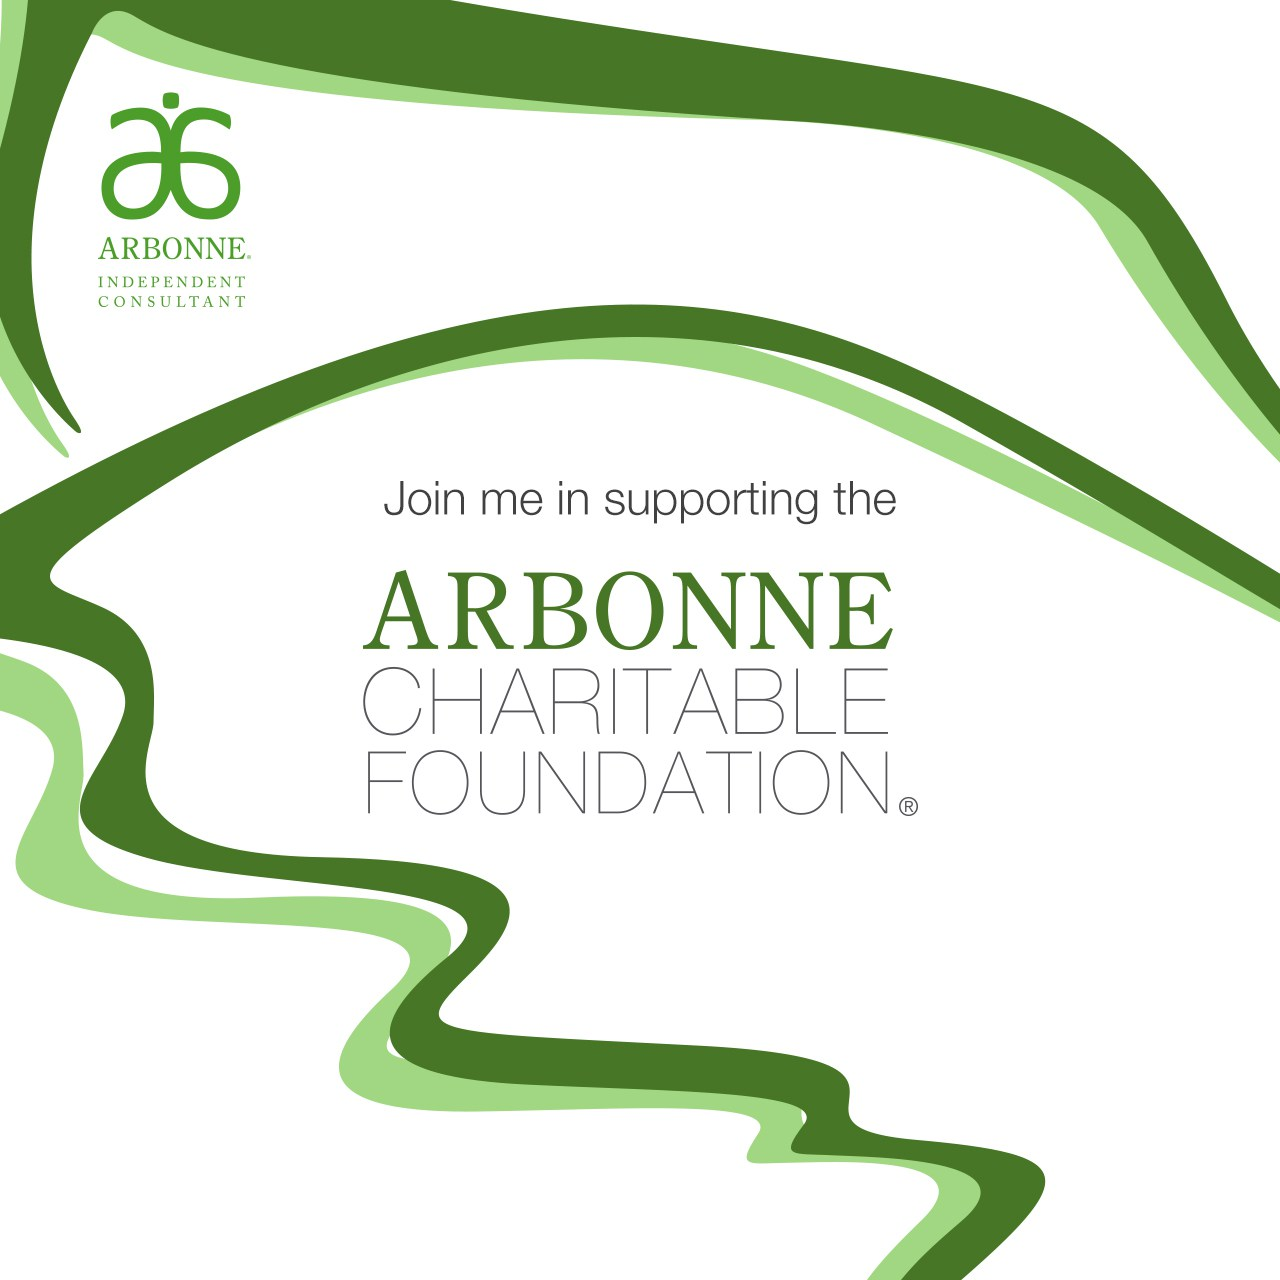 acf join me in supporting the arbonne charitable foundation instagram image  image